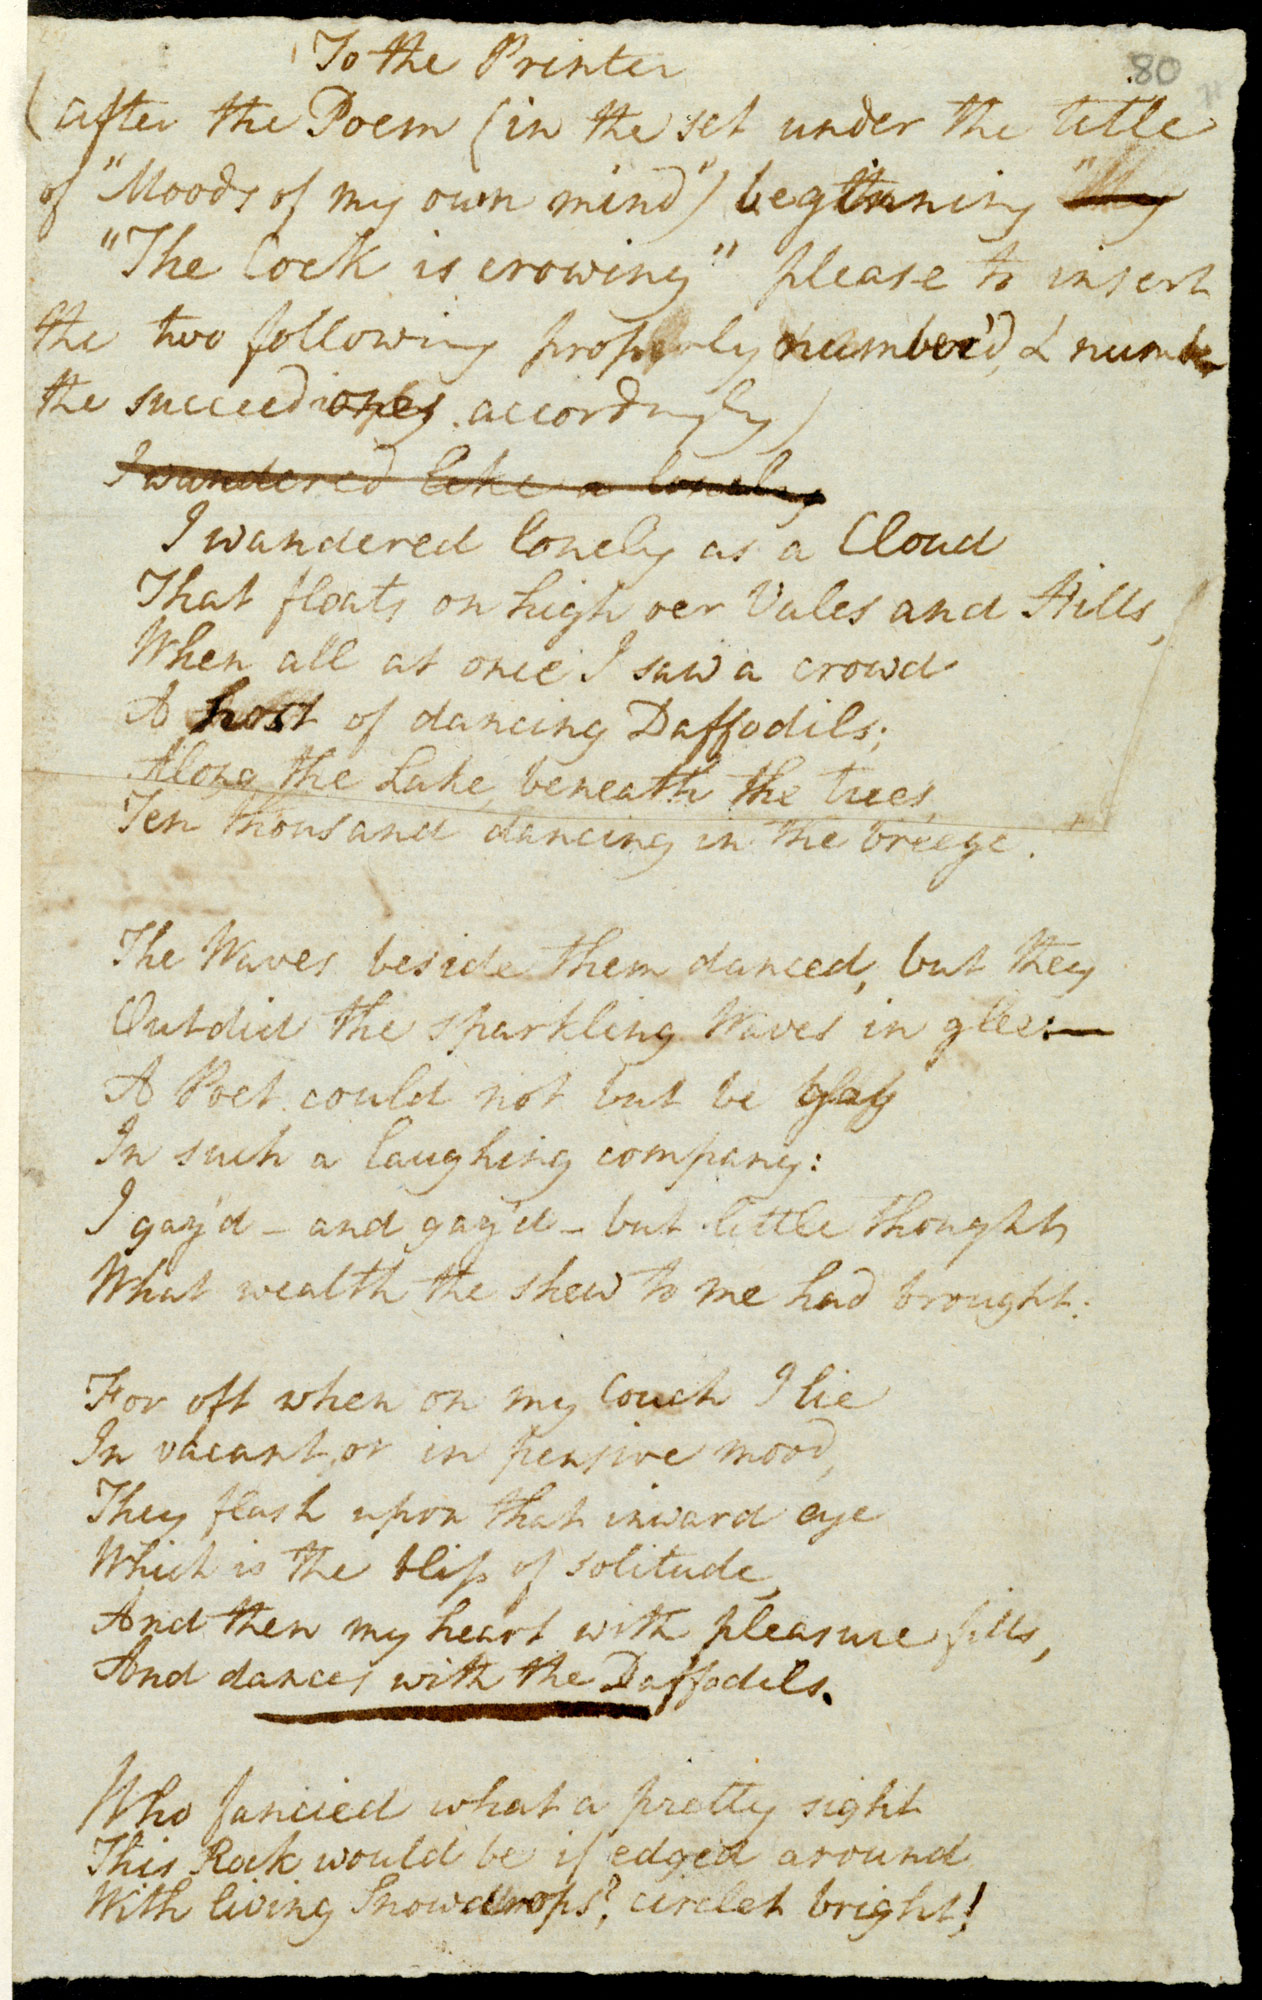 Printer's manuscript of William Wordsworth's Poems, in Two Volumes, 1807 [folio: 80r]